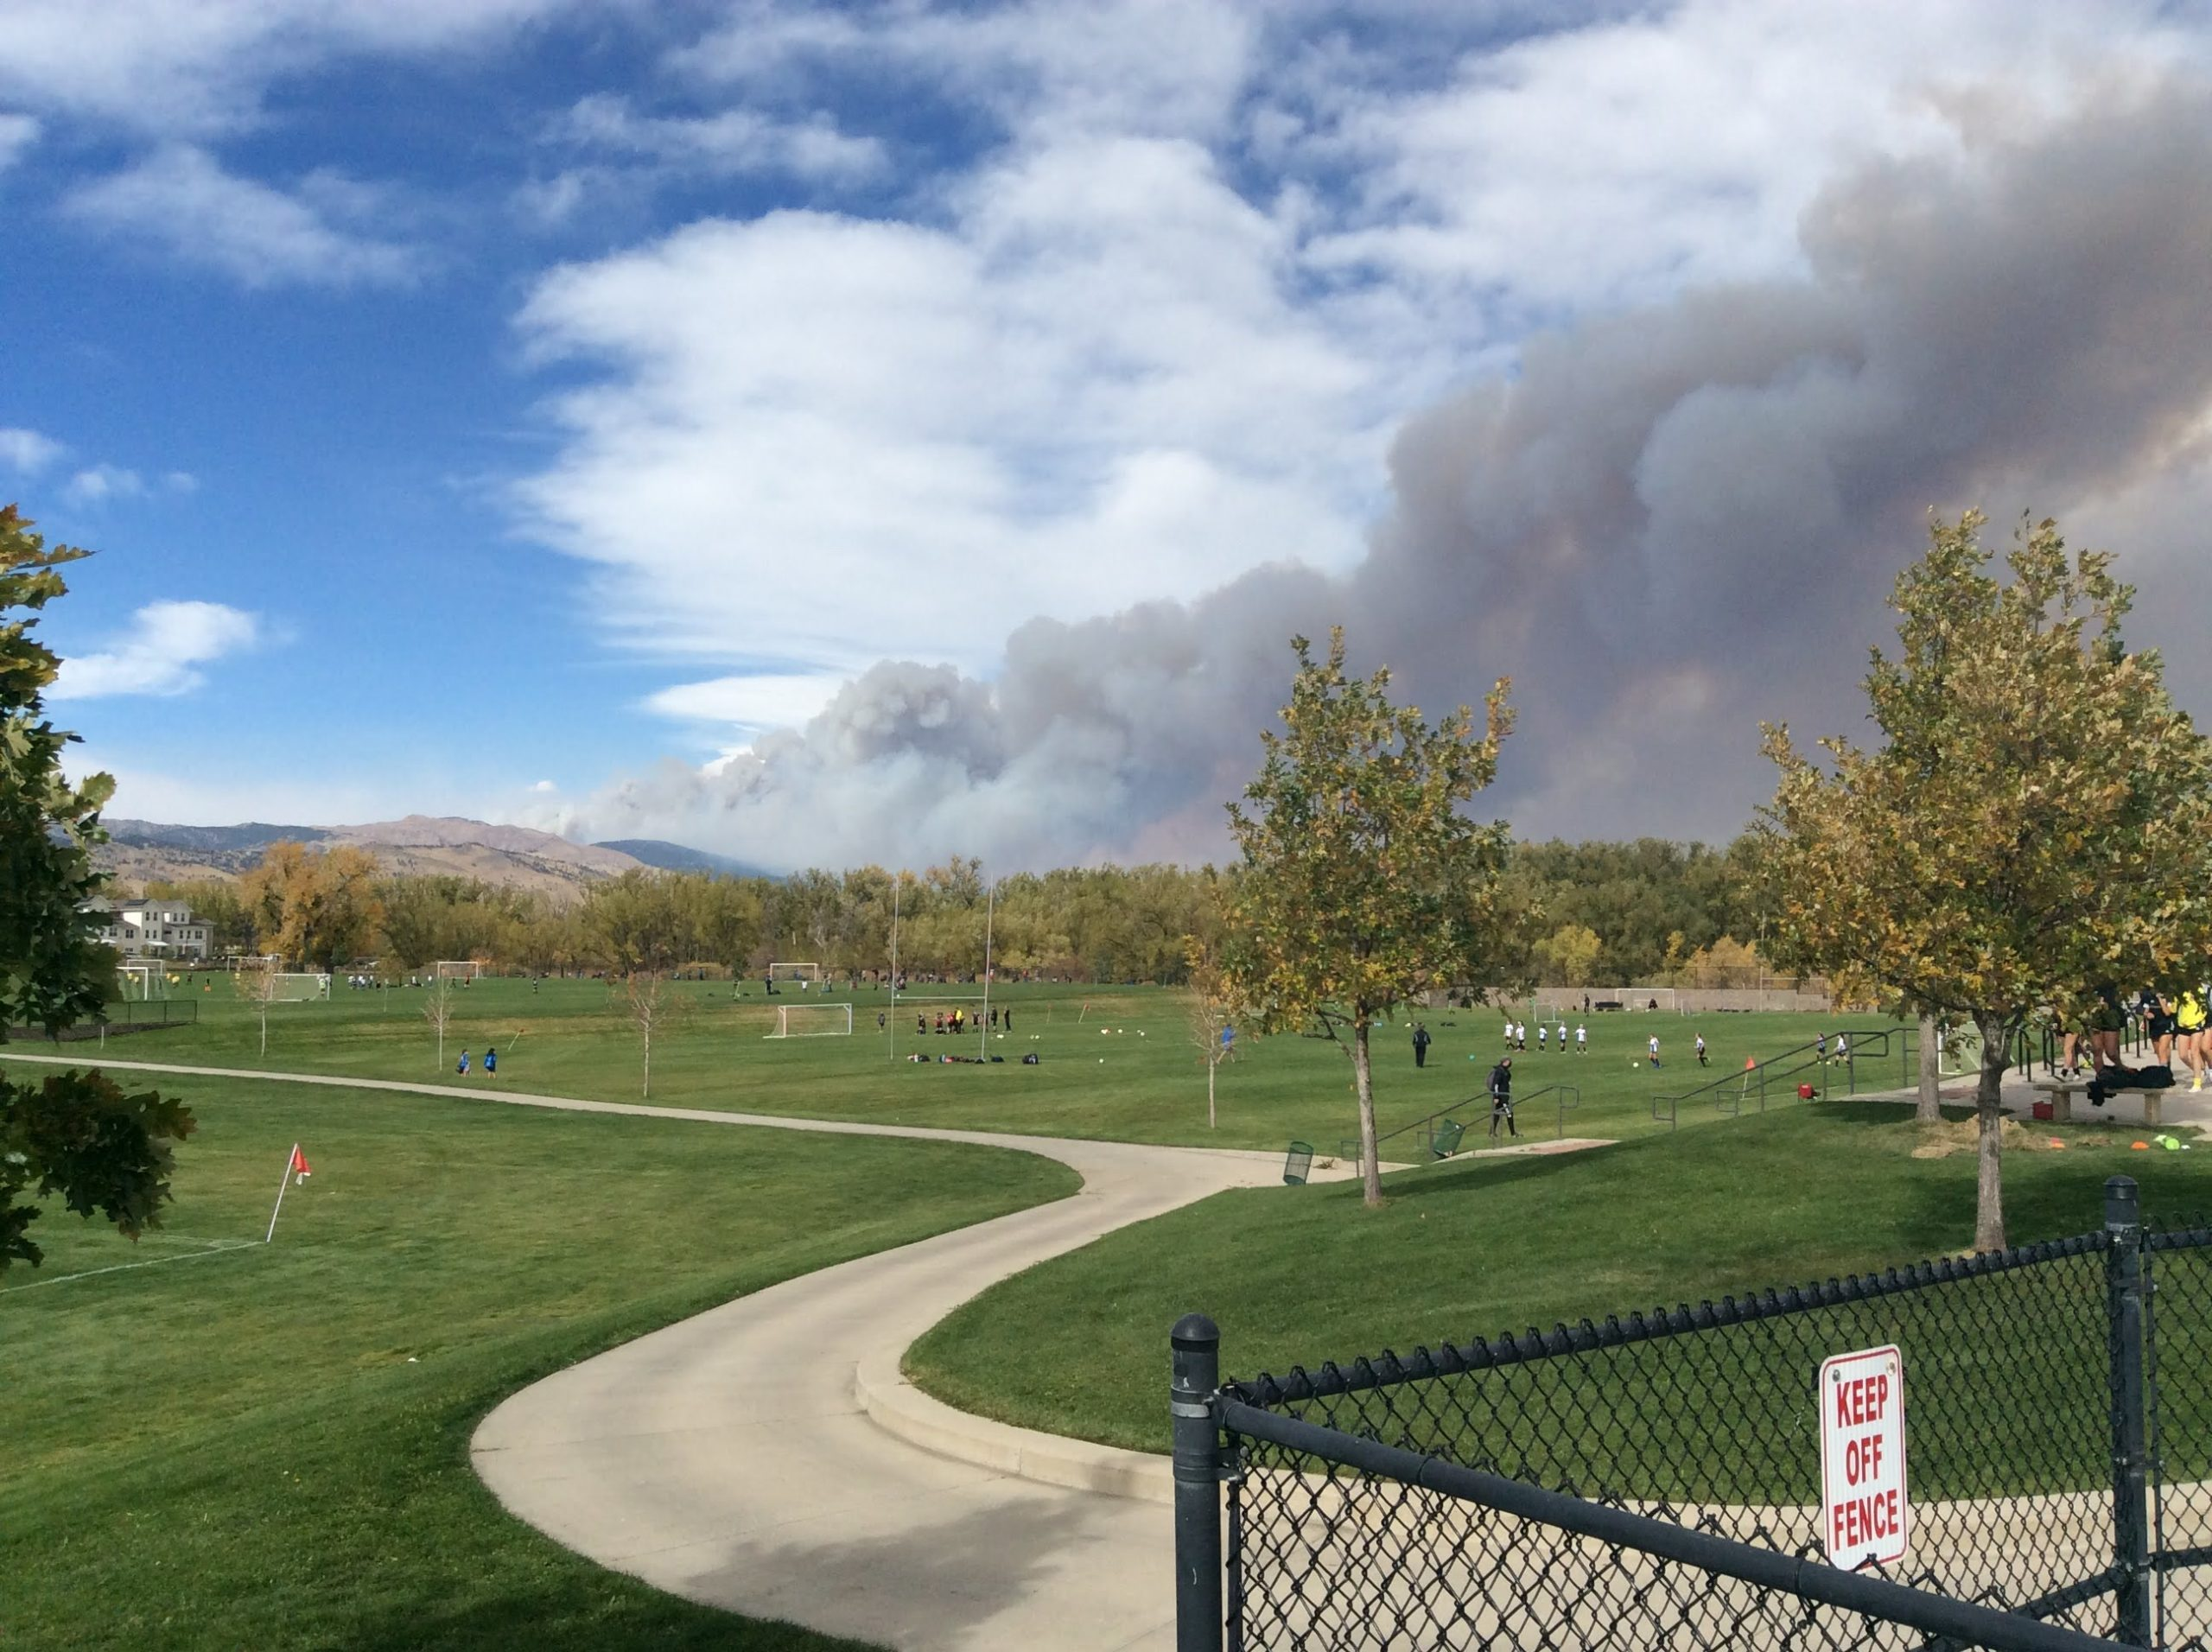 The Calwood Fire erupts west of Boulder Colorado, on October 17, 2020, contributing to a record-setting fire season in the central Rocky Mountains. Image courtesy of Bryan Shuman.